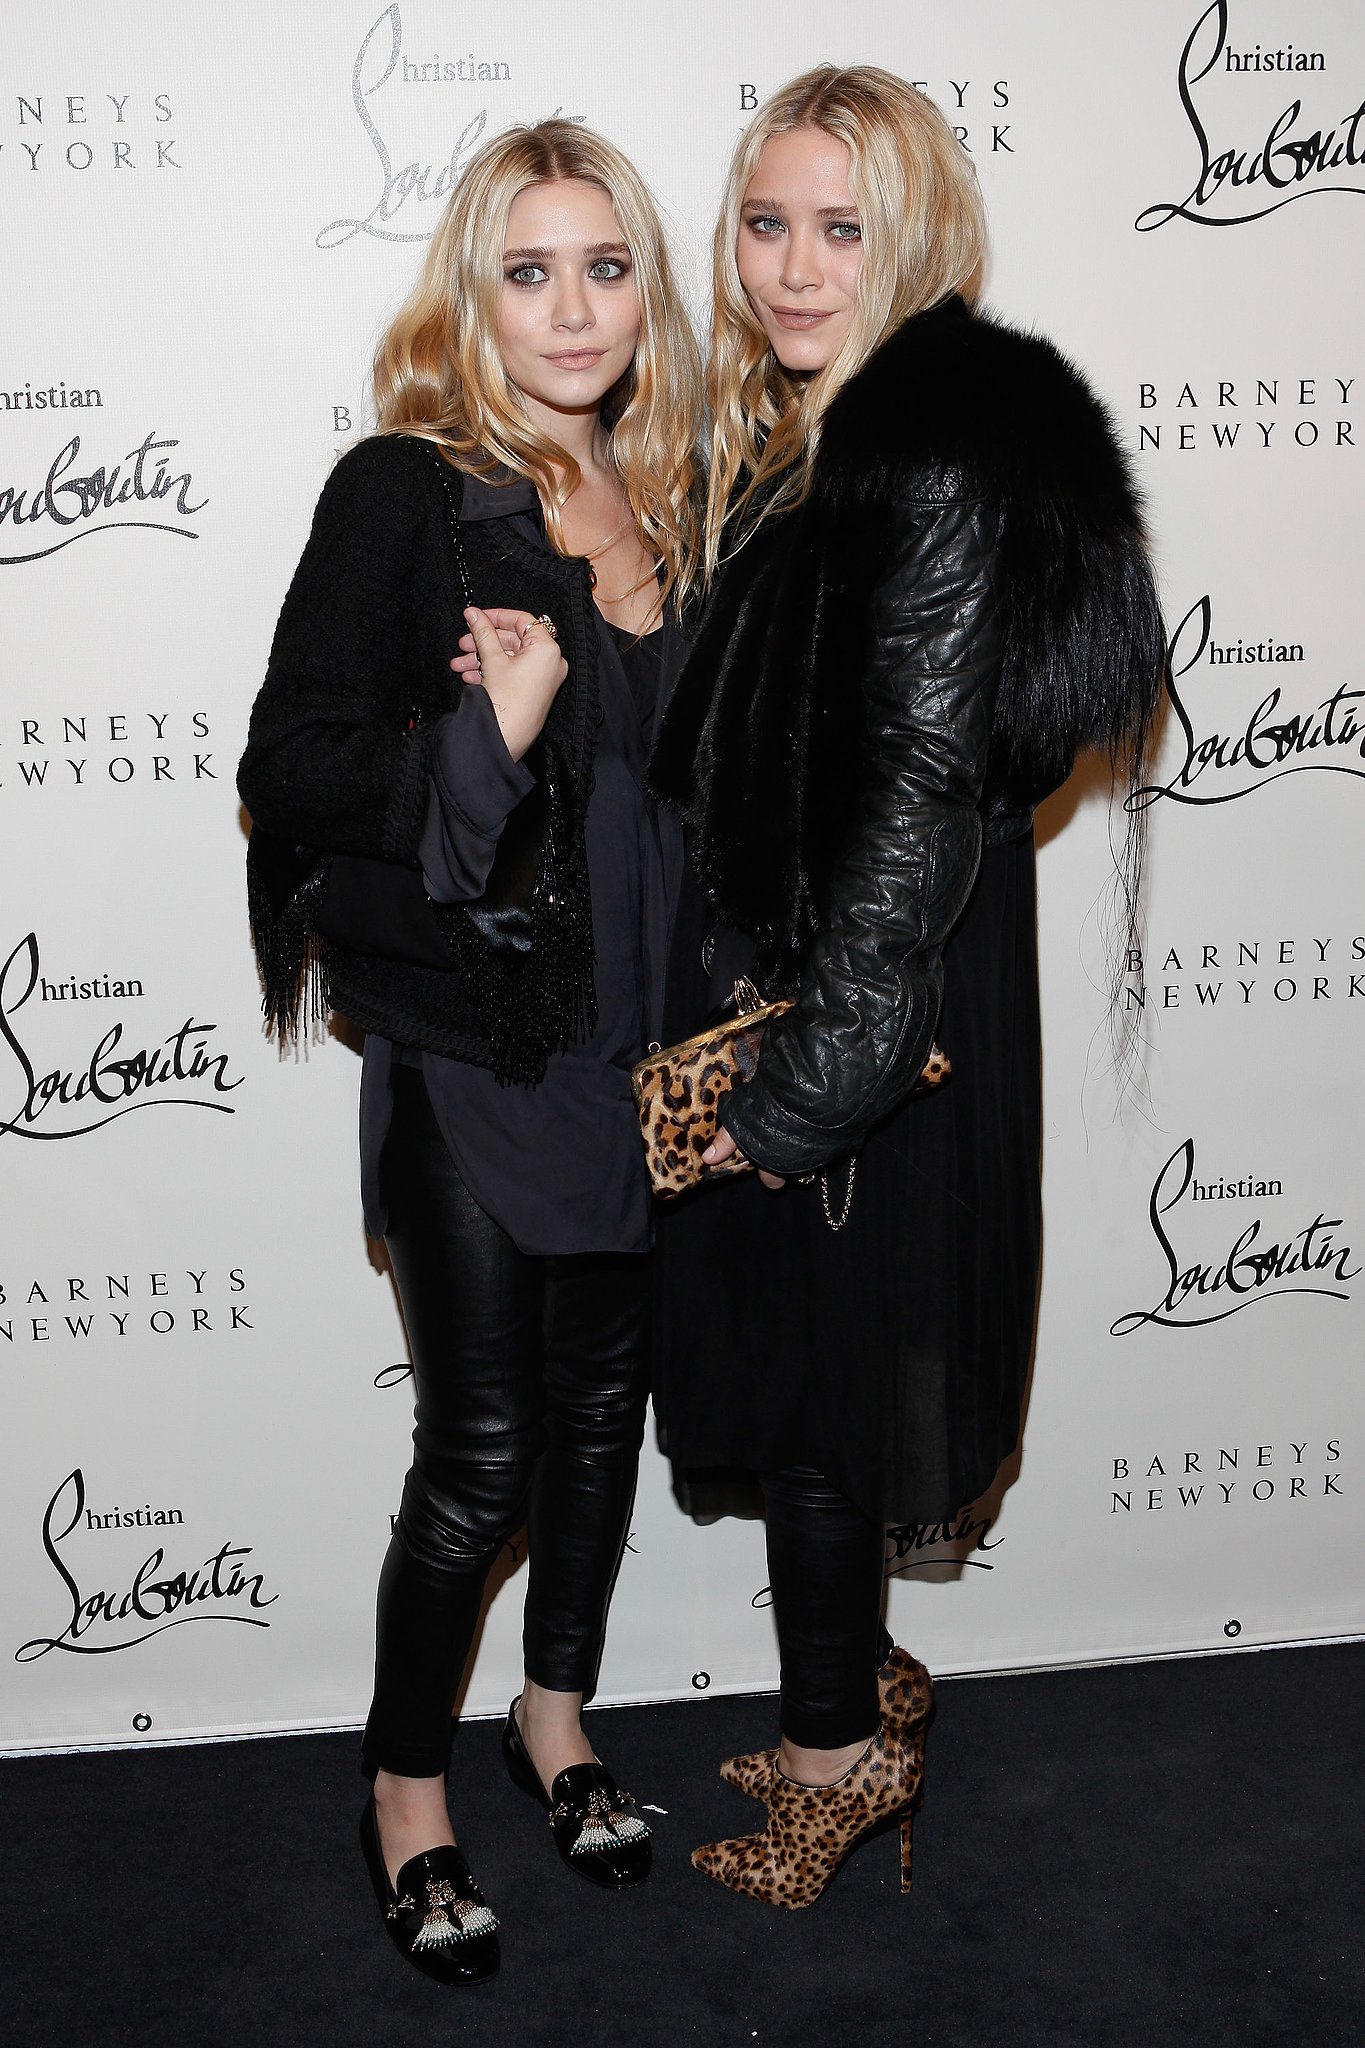 Twinning combo: For Christian Louboutin's November 2011 soiree the girls styled all-black ensembles with statement-making shoes.  Ashley juxtaposed edgy leather leggings with a smart tweed jacket and Christian Louboutin tasseled driving loafers. Mary-Kate injected a pop of print with a leopard clutch and matching ankle booties, both by Christian Louboutin.